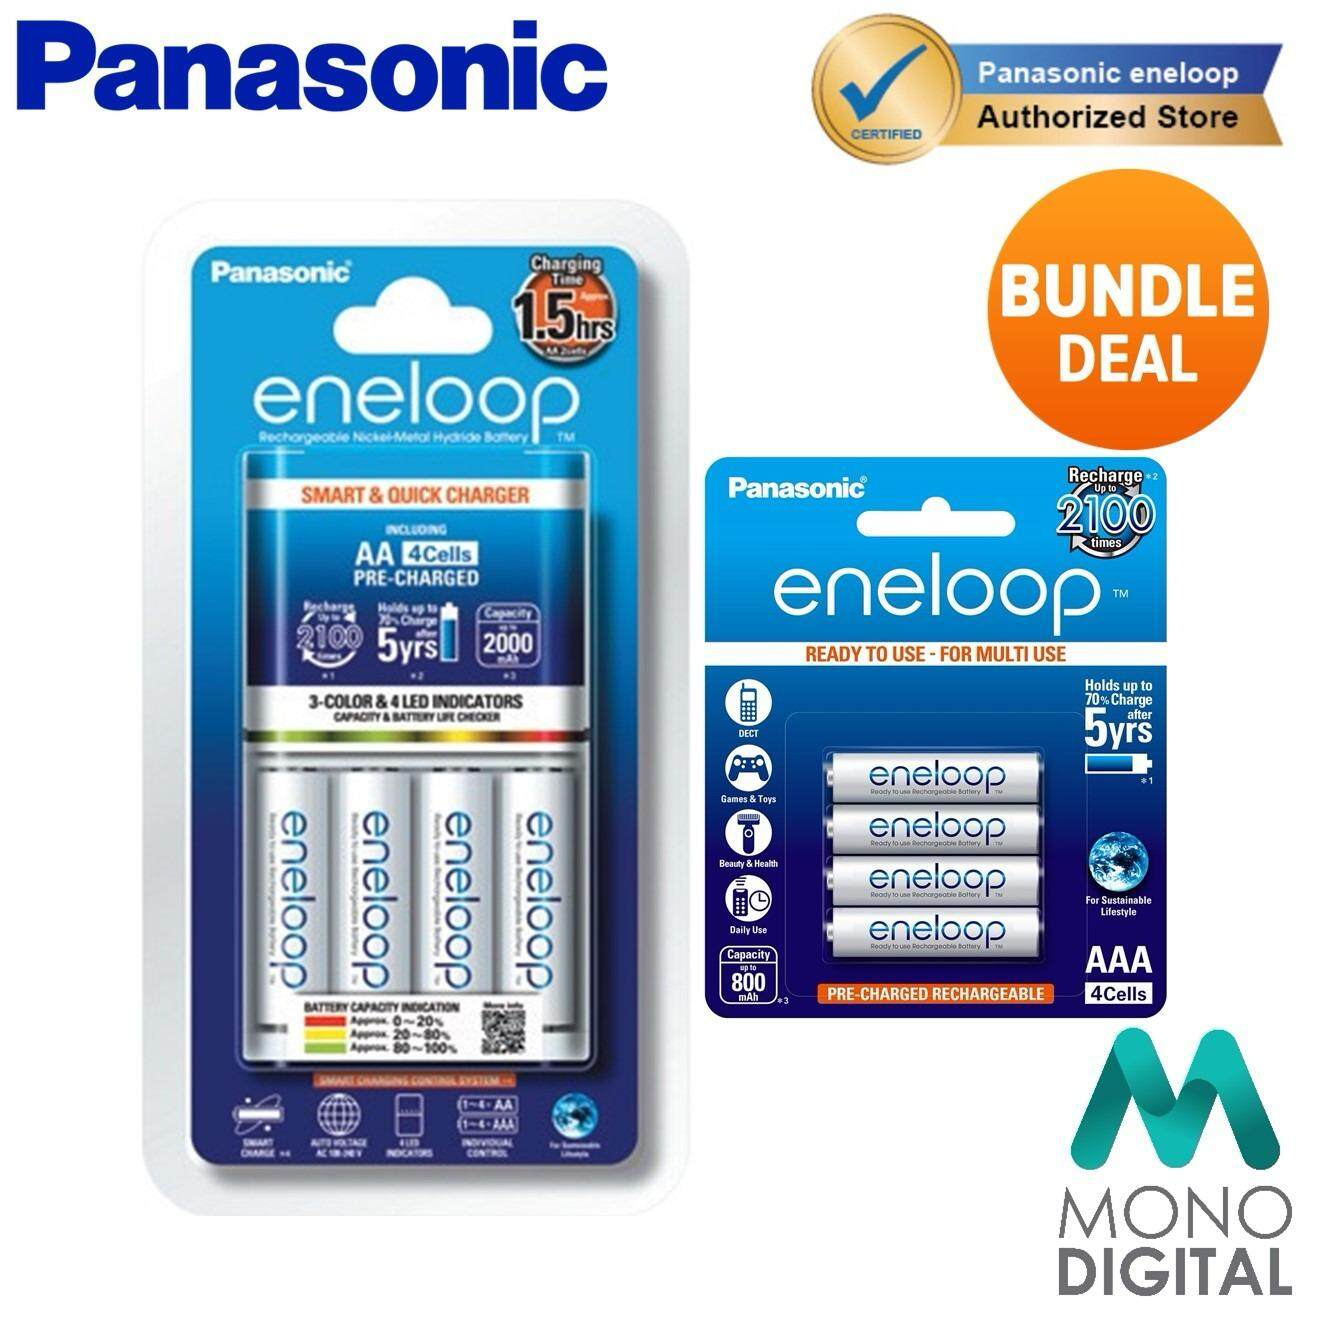 Panasonic Eneloop Smart & Quick Charger With 4 Cells AA Bundled with Eneloop AAA Rechargeable Battery (Panasonic Malaysia) Malaysia